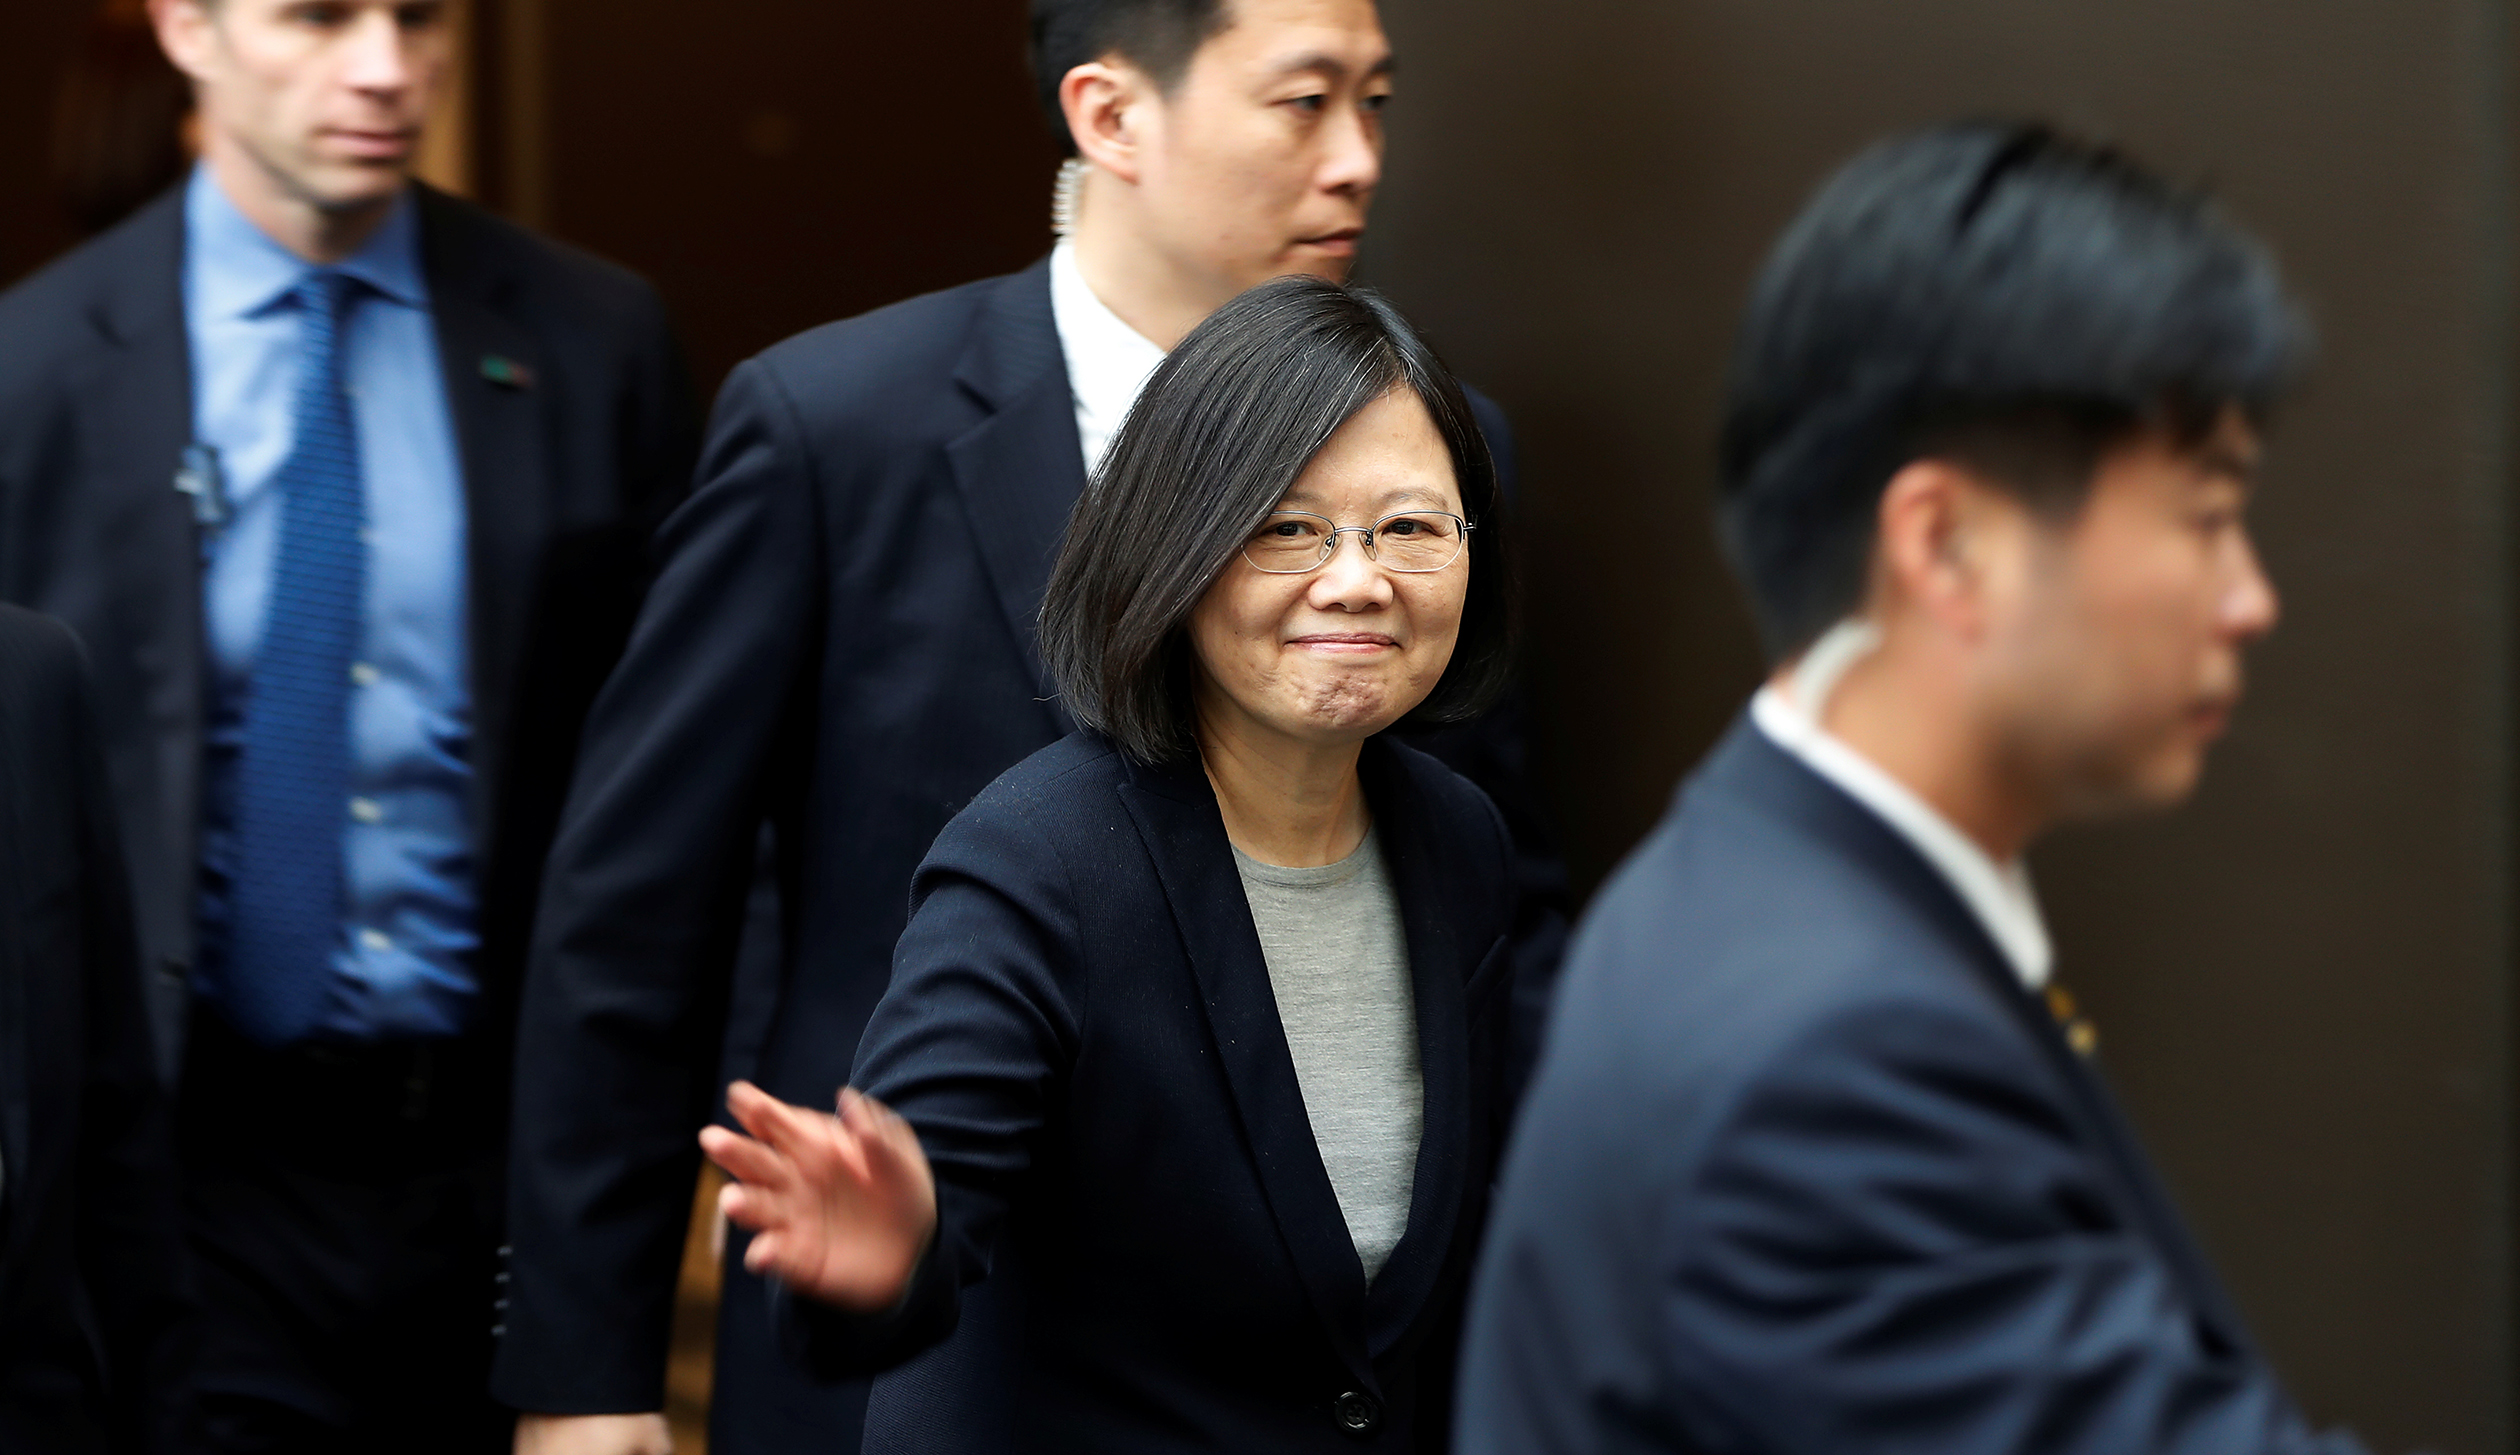 Taiwan President Tsai Ing-wen leaves a luncheon during a stop-over after her visit to Latin America in Burlingame